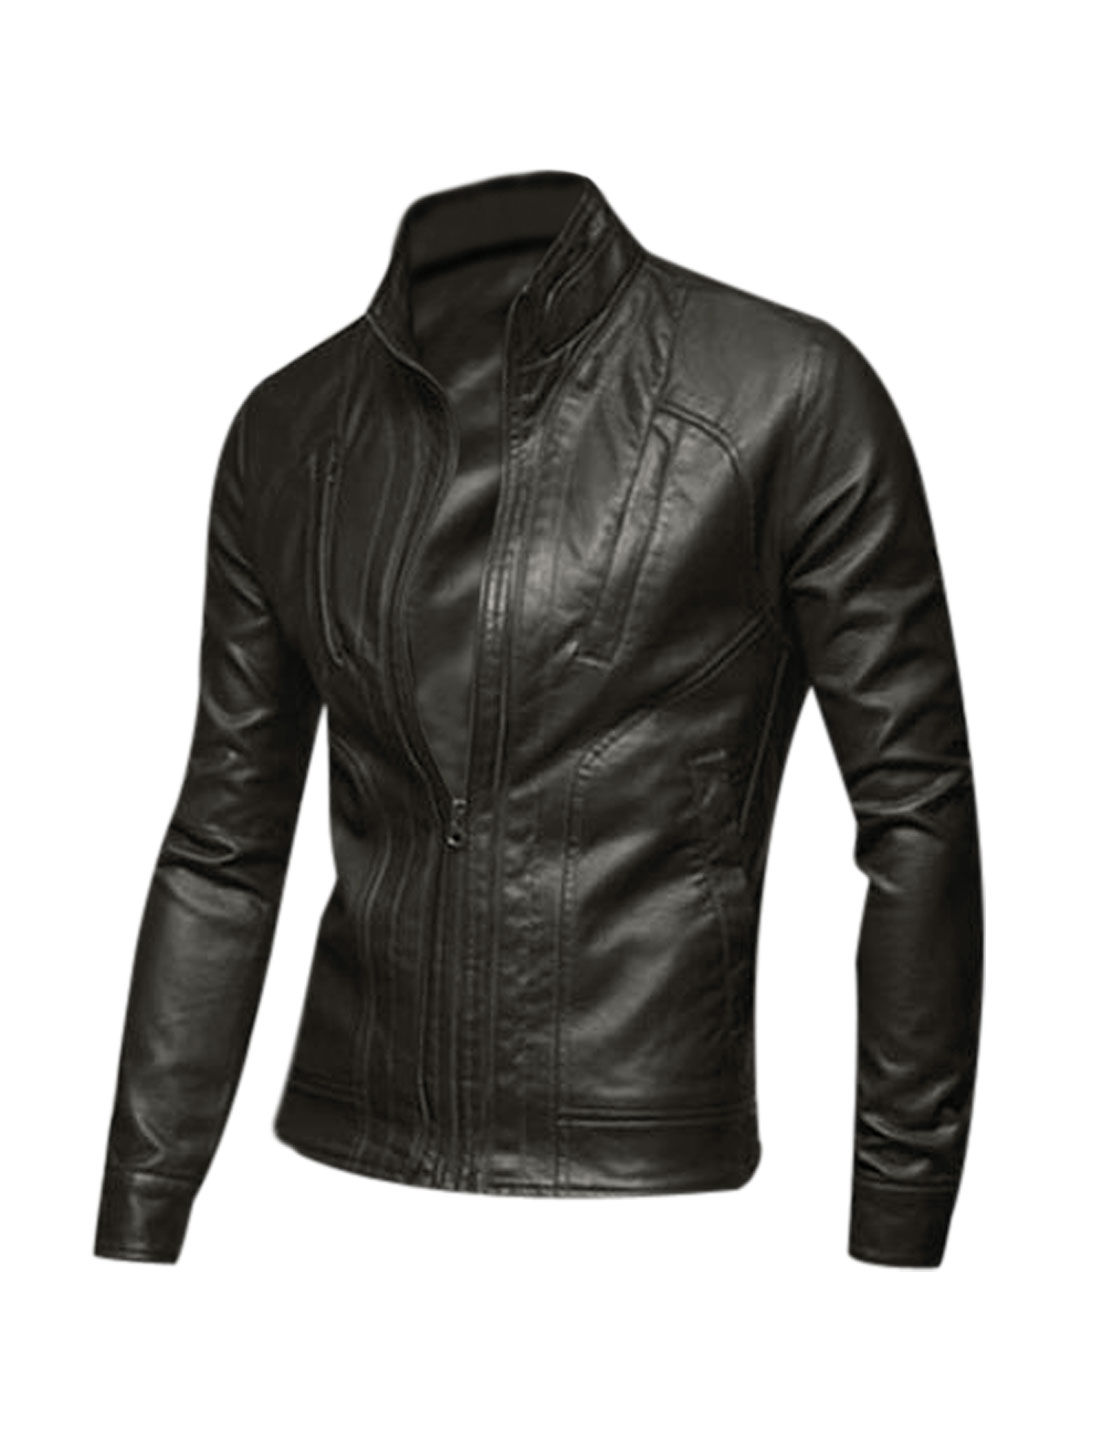 Men Long Sleeves Full Zip Chic Imitation Leather Jacket Brown M